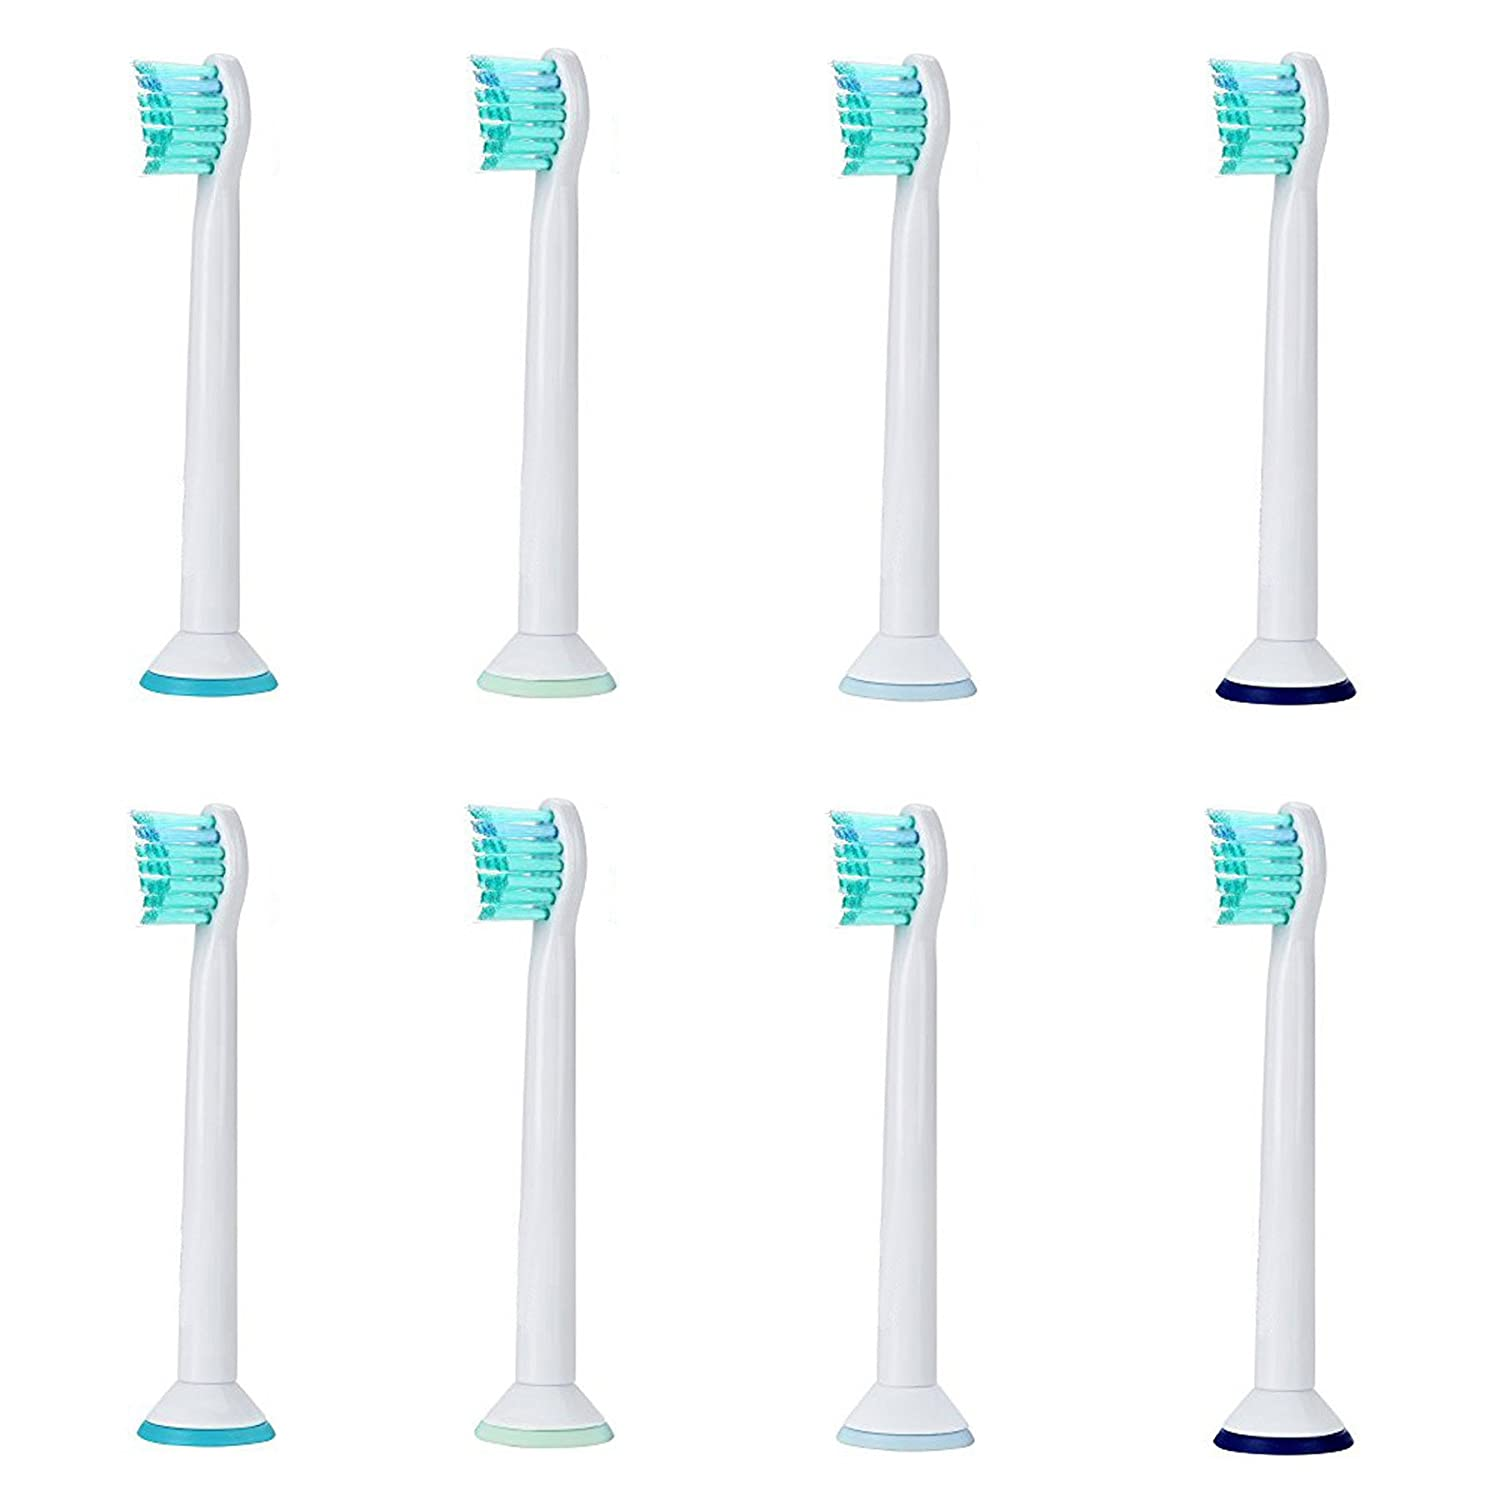 8-pack Philips Sonicare ProResults HX6023 / HX6024 Compatible Compact Brush Heads, fits all Sonicare Snap-on models: DiamondClean, Flexcare Series, HealthyWhite, Plaque Control, Gum Health, etc. DiscoveryHealth